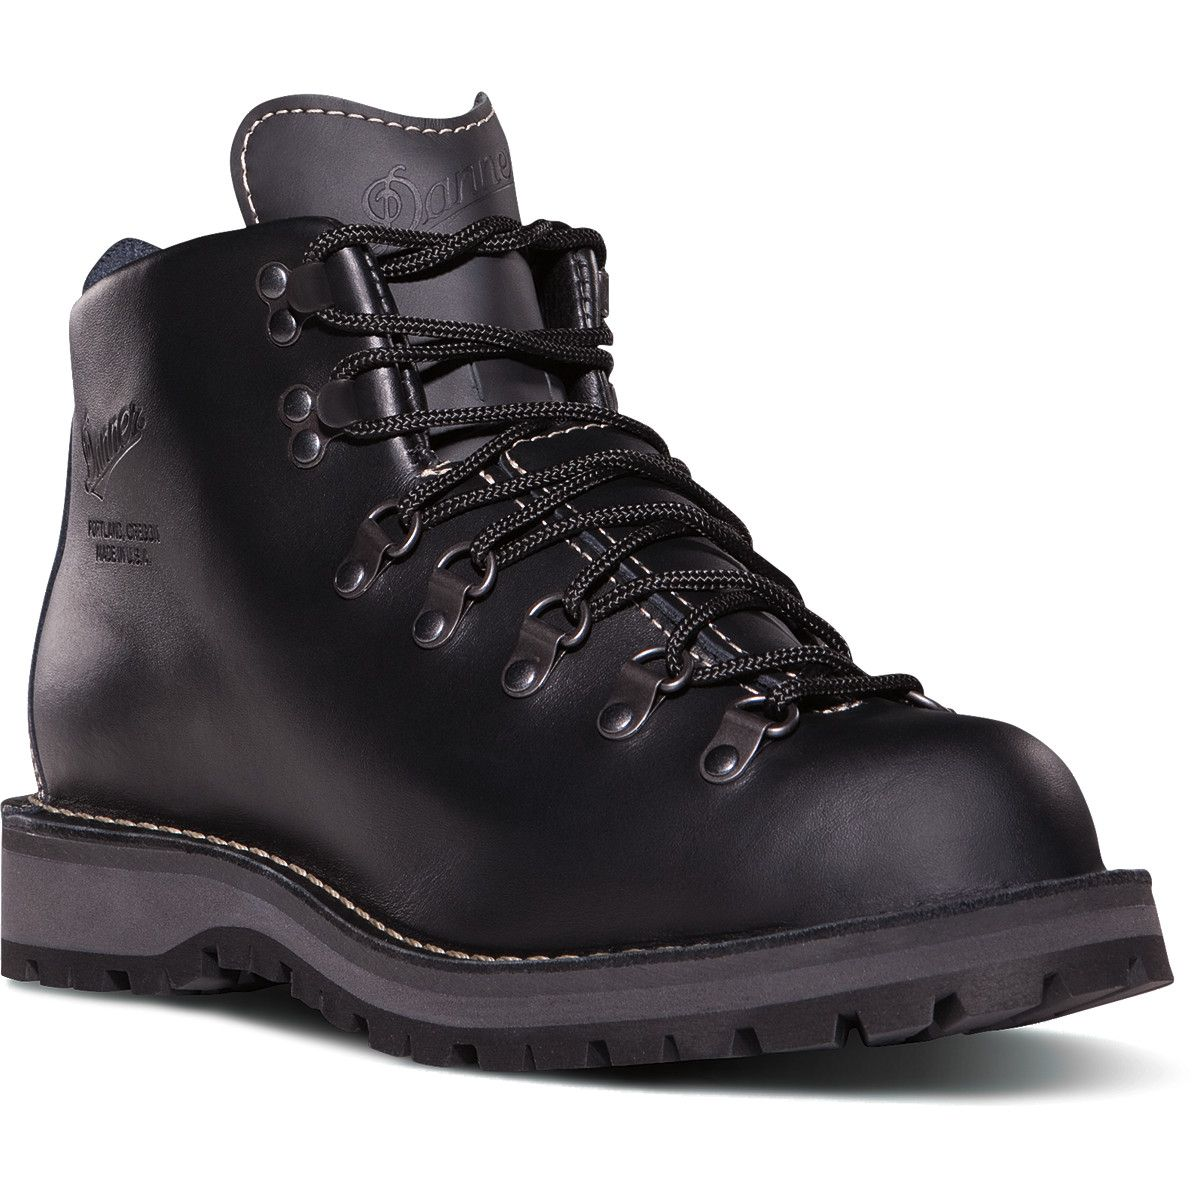 Danner boots, Hiking boots